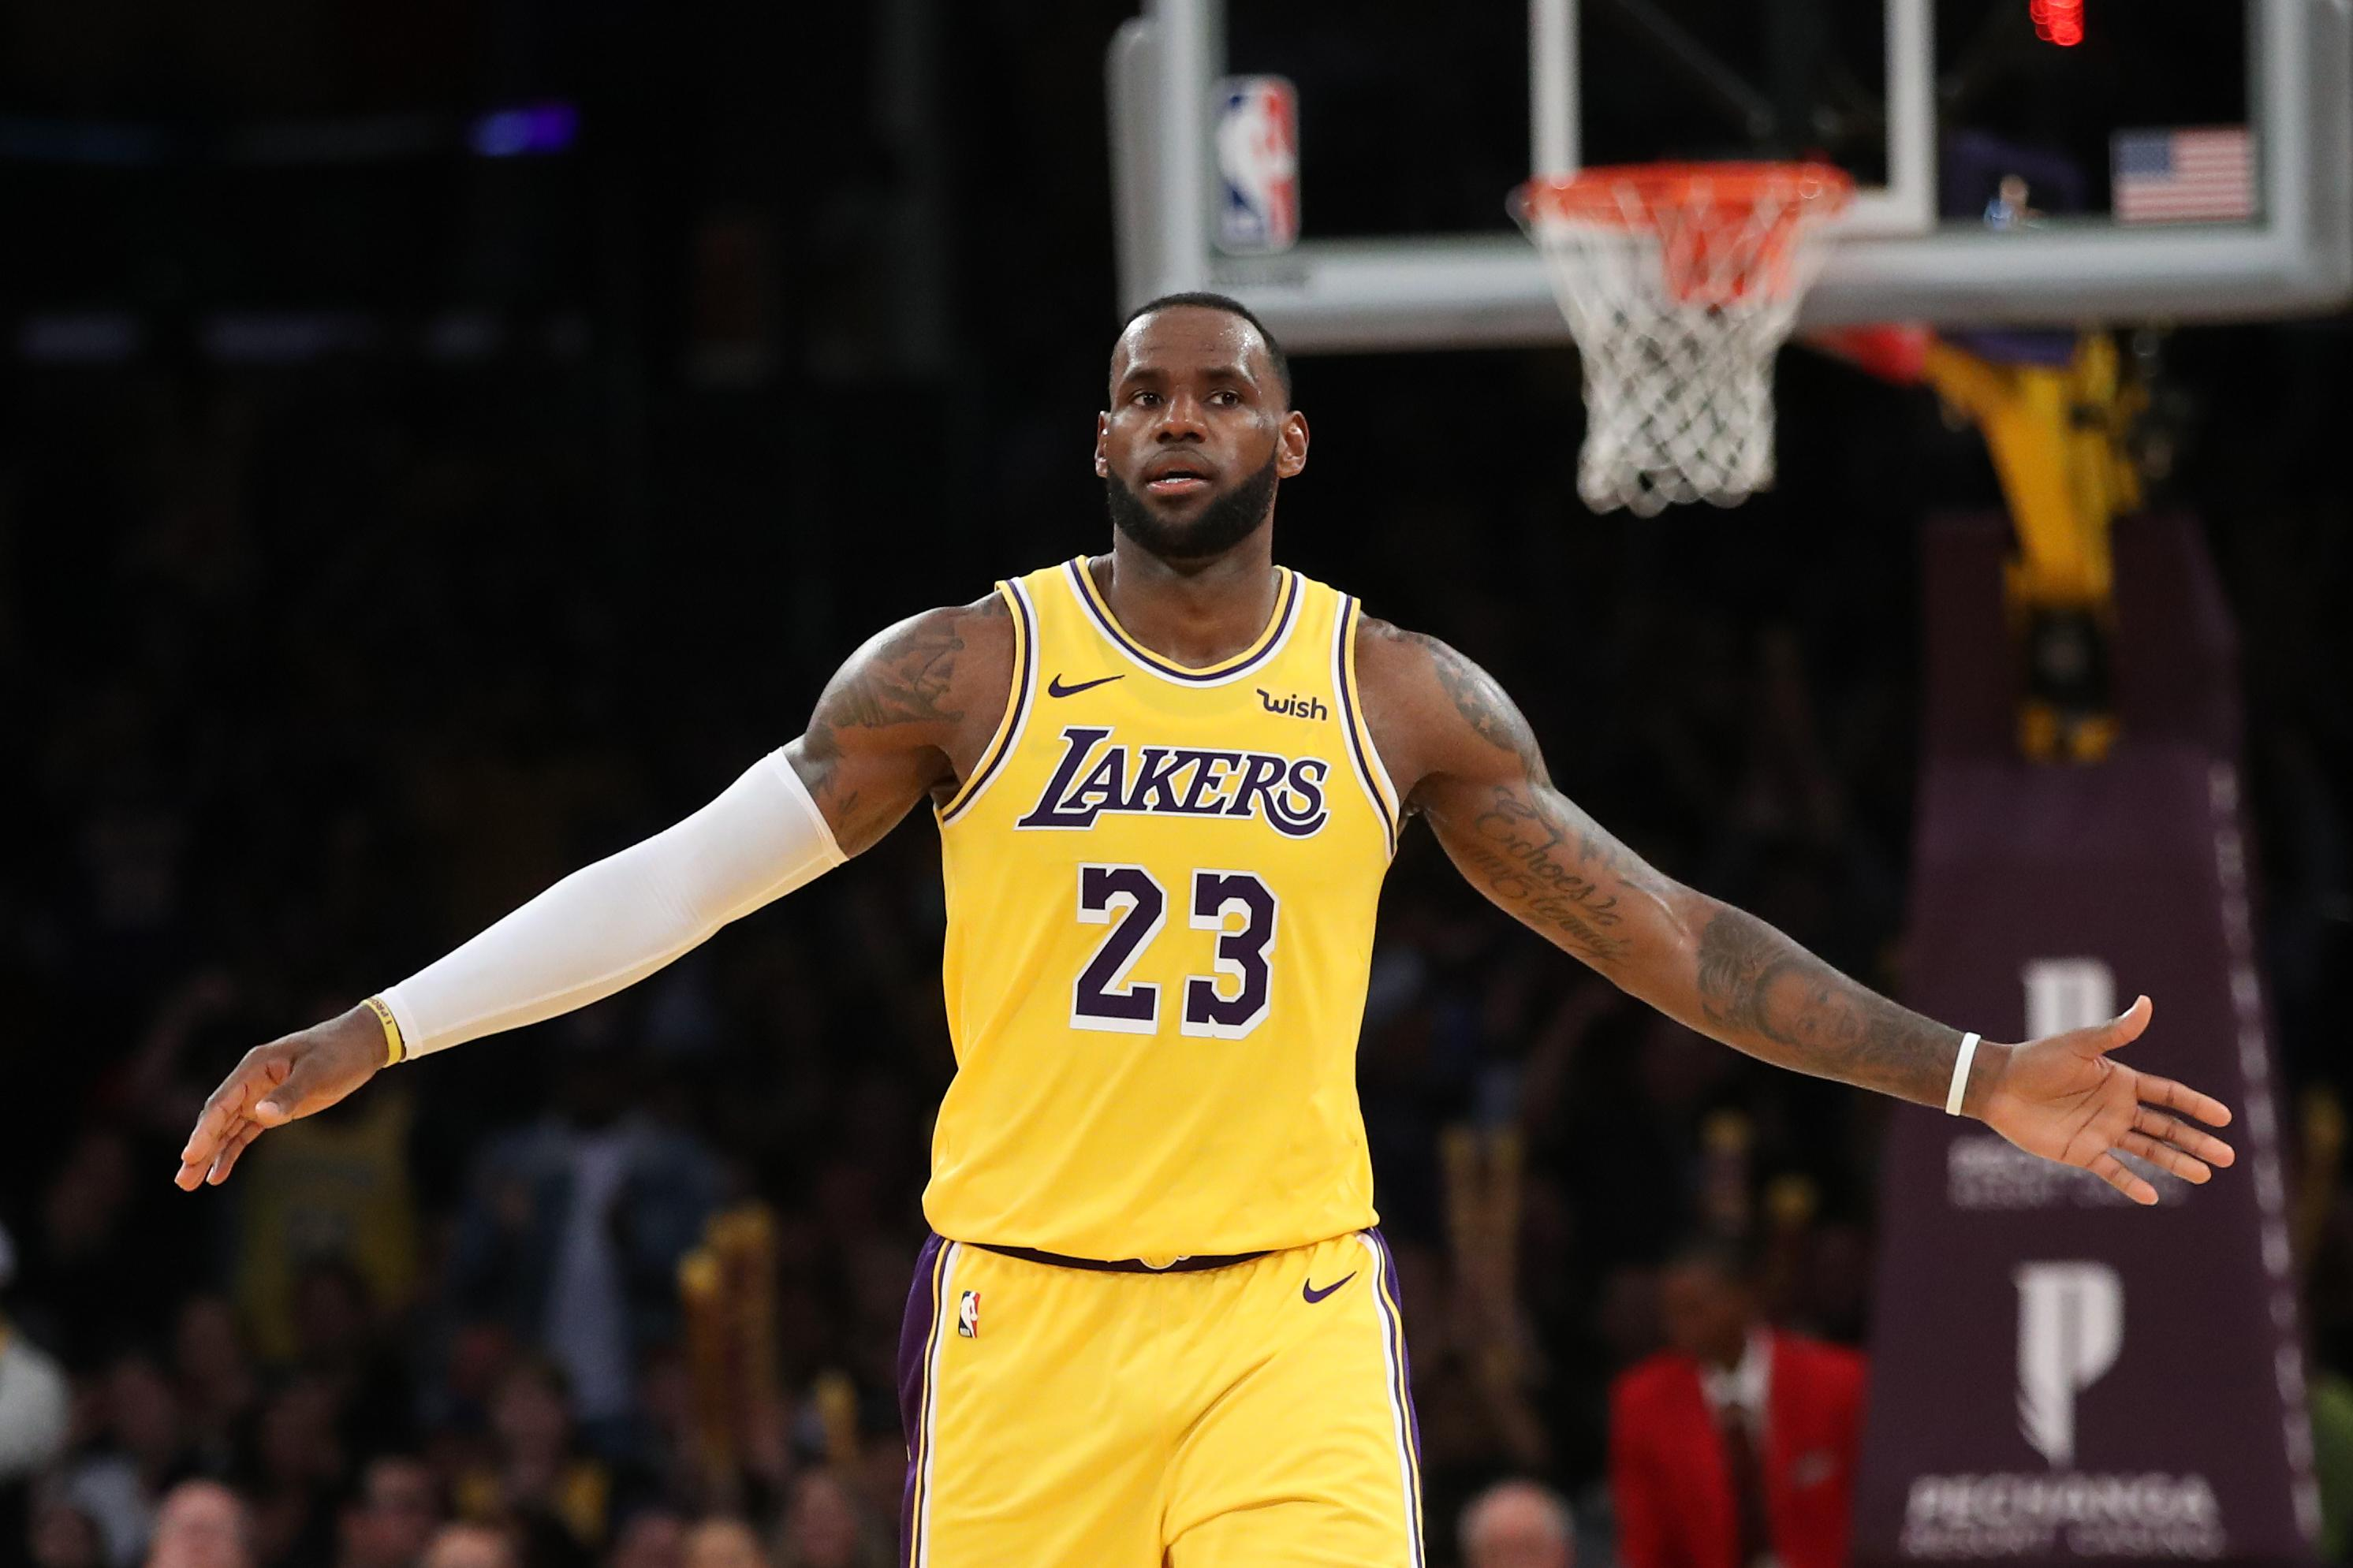 official photos 4c6c5 f5018 NBA: LeBron James Shows No Signs Of 'Father Time' In Video